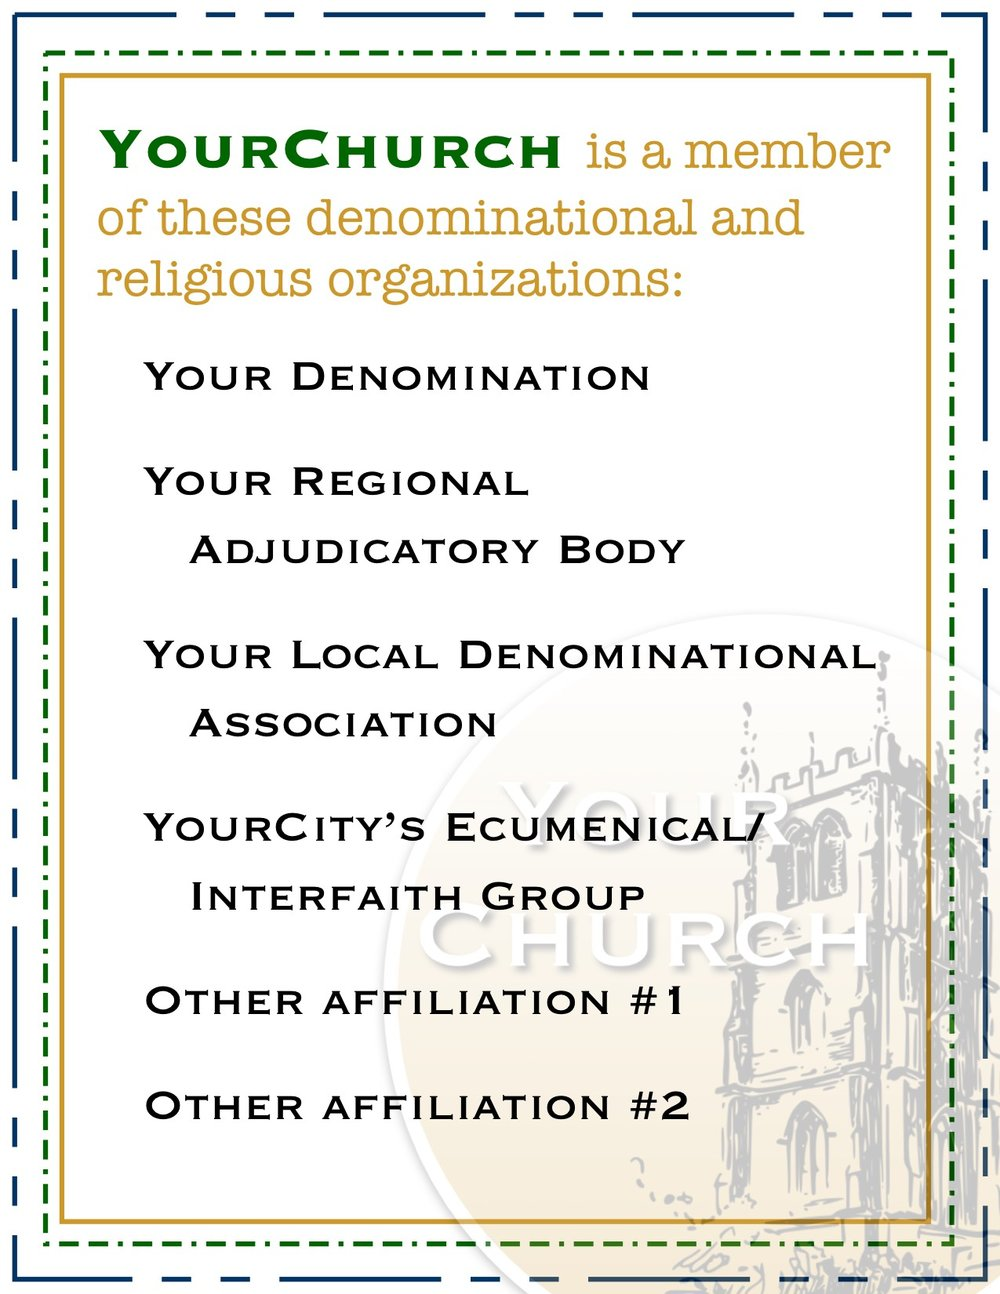 YourChurch Affiliations